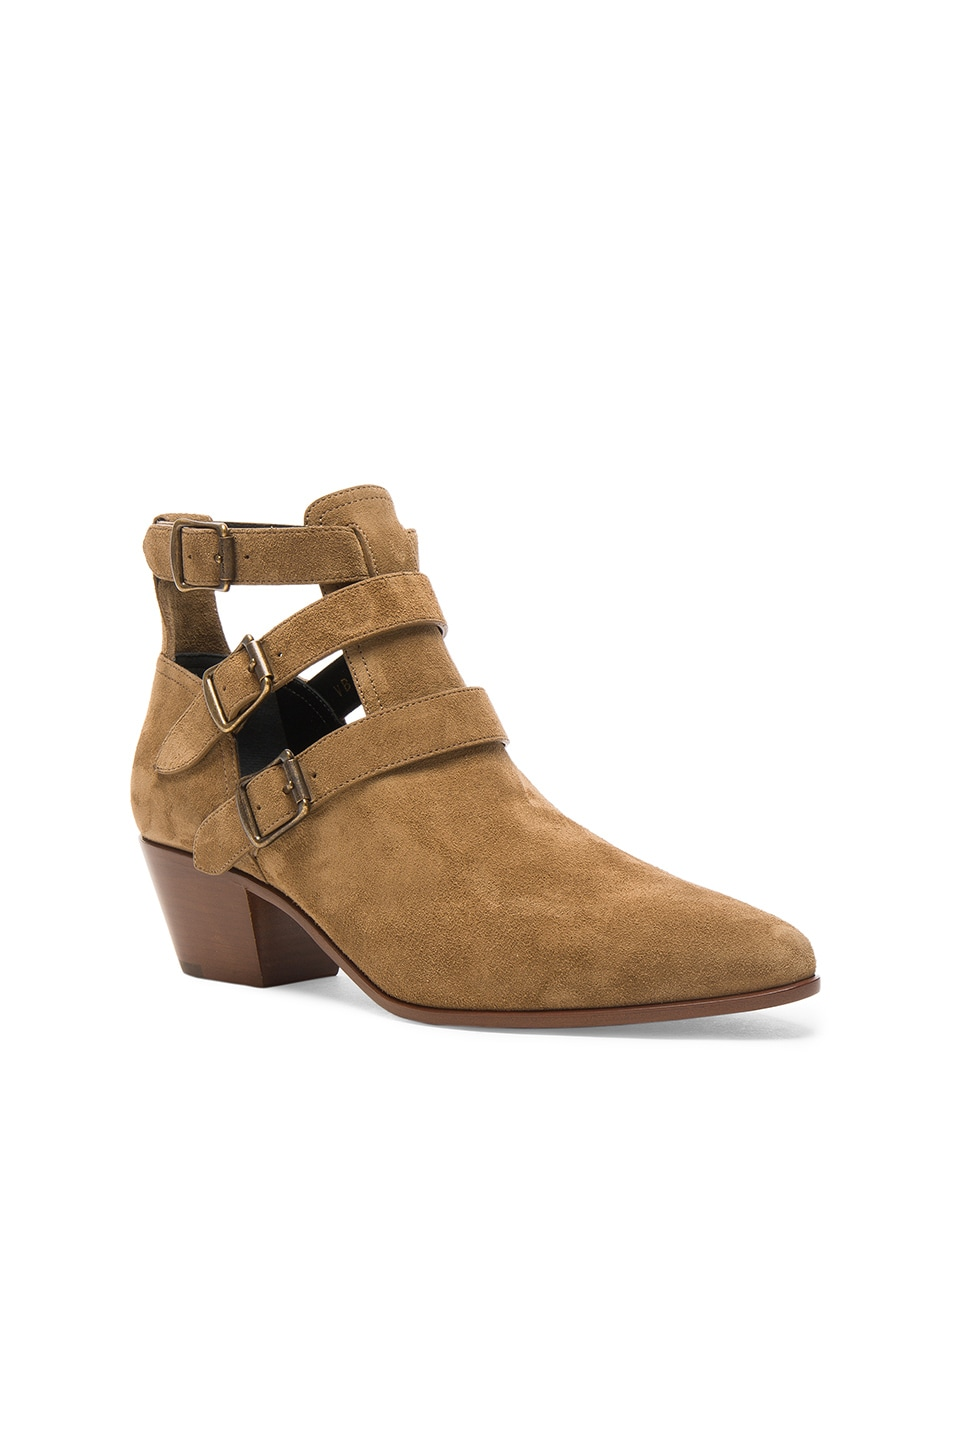 Image 2 of Saint Laurent Suede Rock Boots in Light Cigare